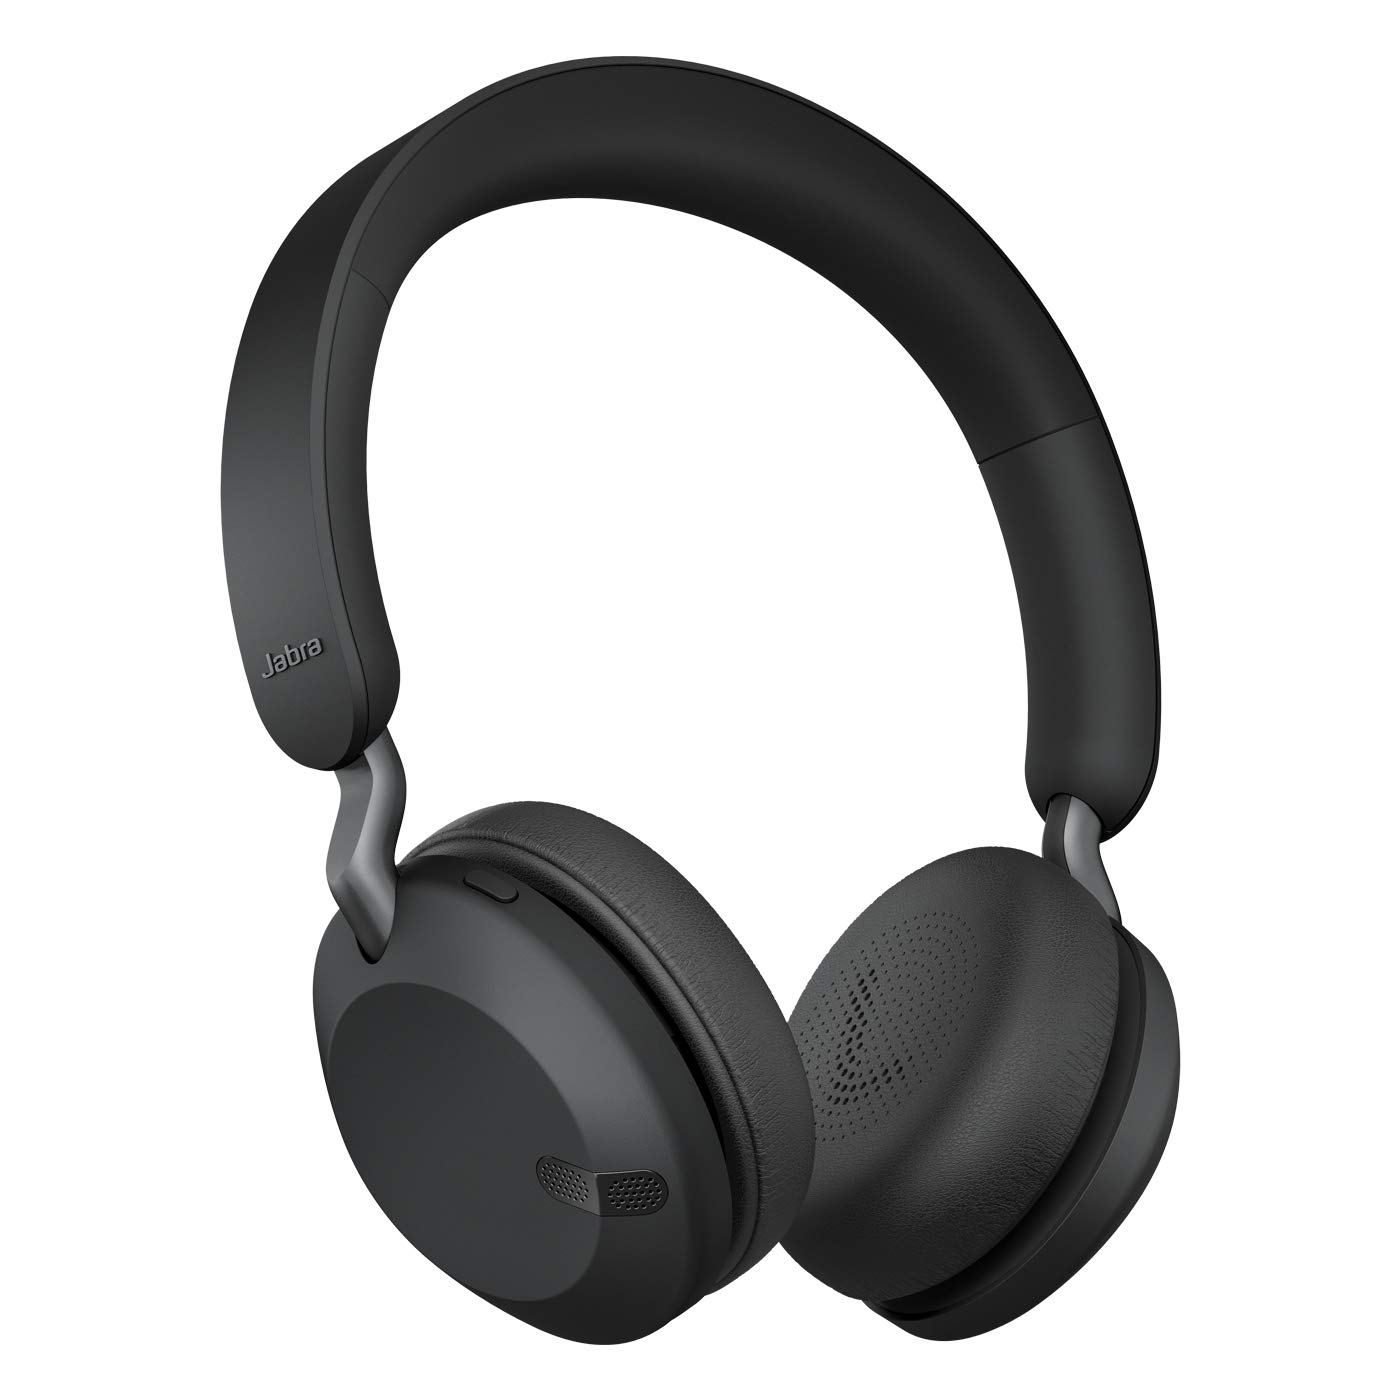 Jabra Elite 45h, On-Ear Wireless Headphones with Up to 50 Hours of Battery Life, Superior Sound with 40mm Speakers, Compact & Lightweight -Titanium Black, Designed in Denmark